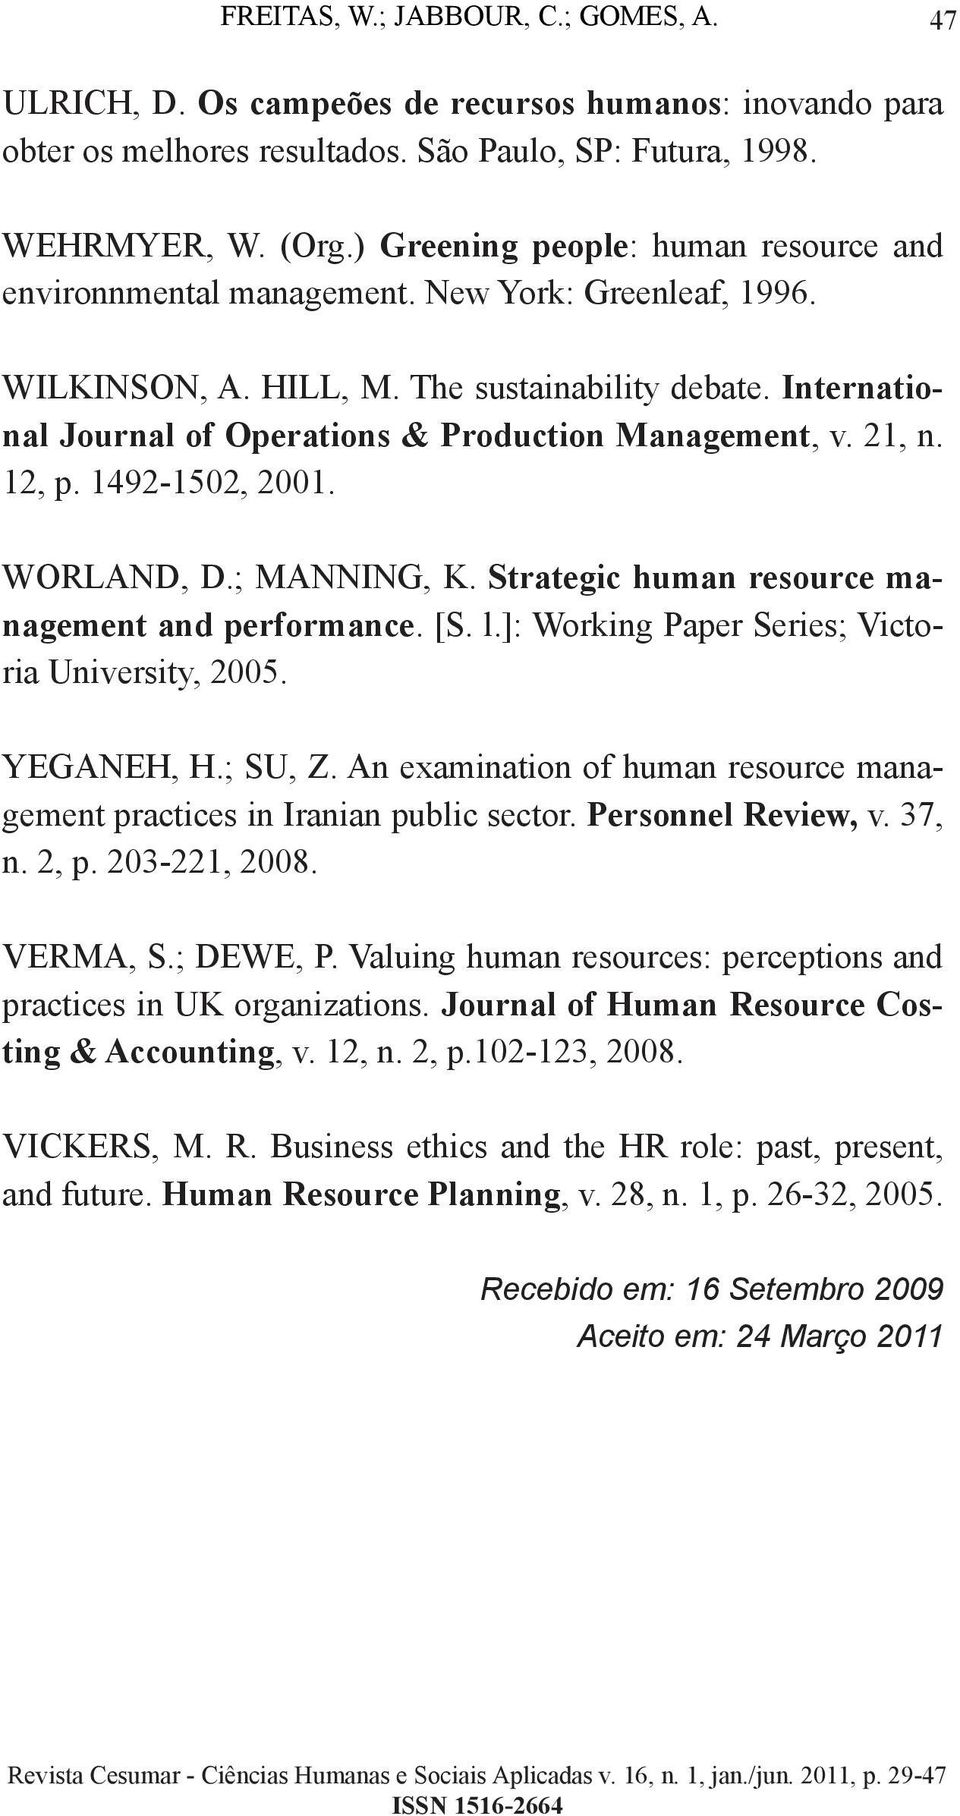 International Journal of Operations & Production Management, v. 21, n. 12, p. 1492-1502, 2001. WORLAND, D.; MANNING, K. Strategic human resource management and performance. [S. l.